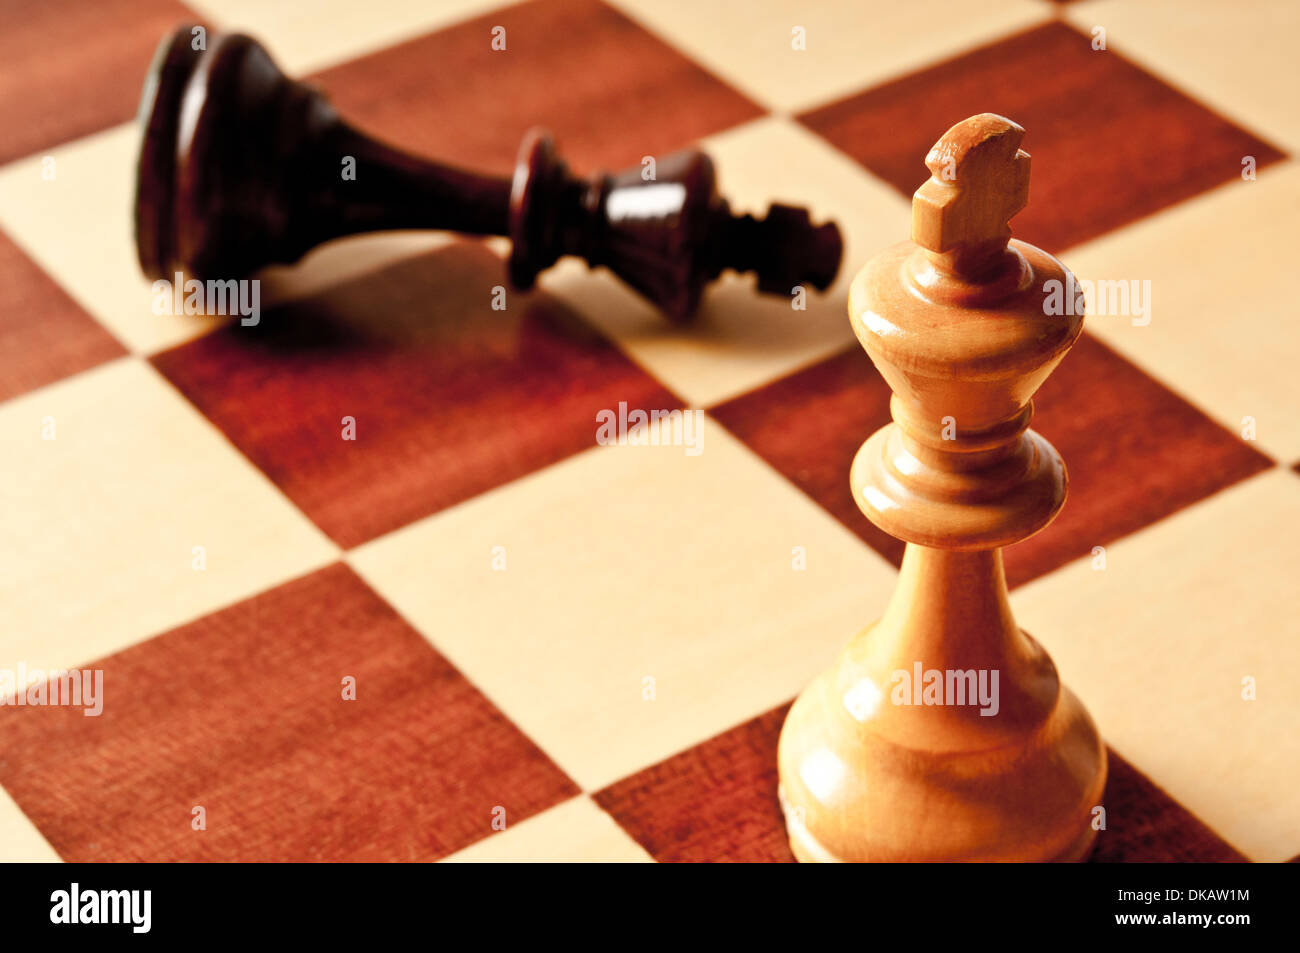 checkmate concept - Stock Image